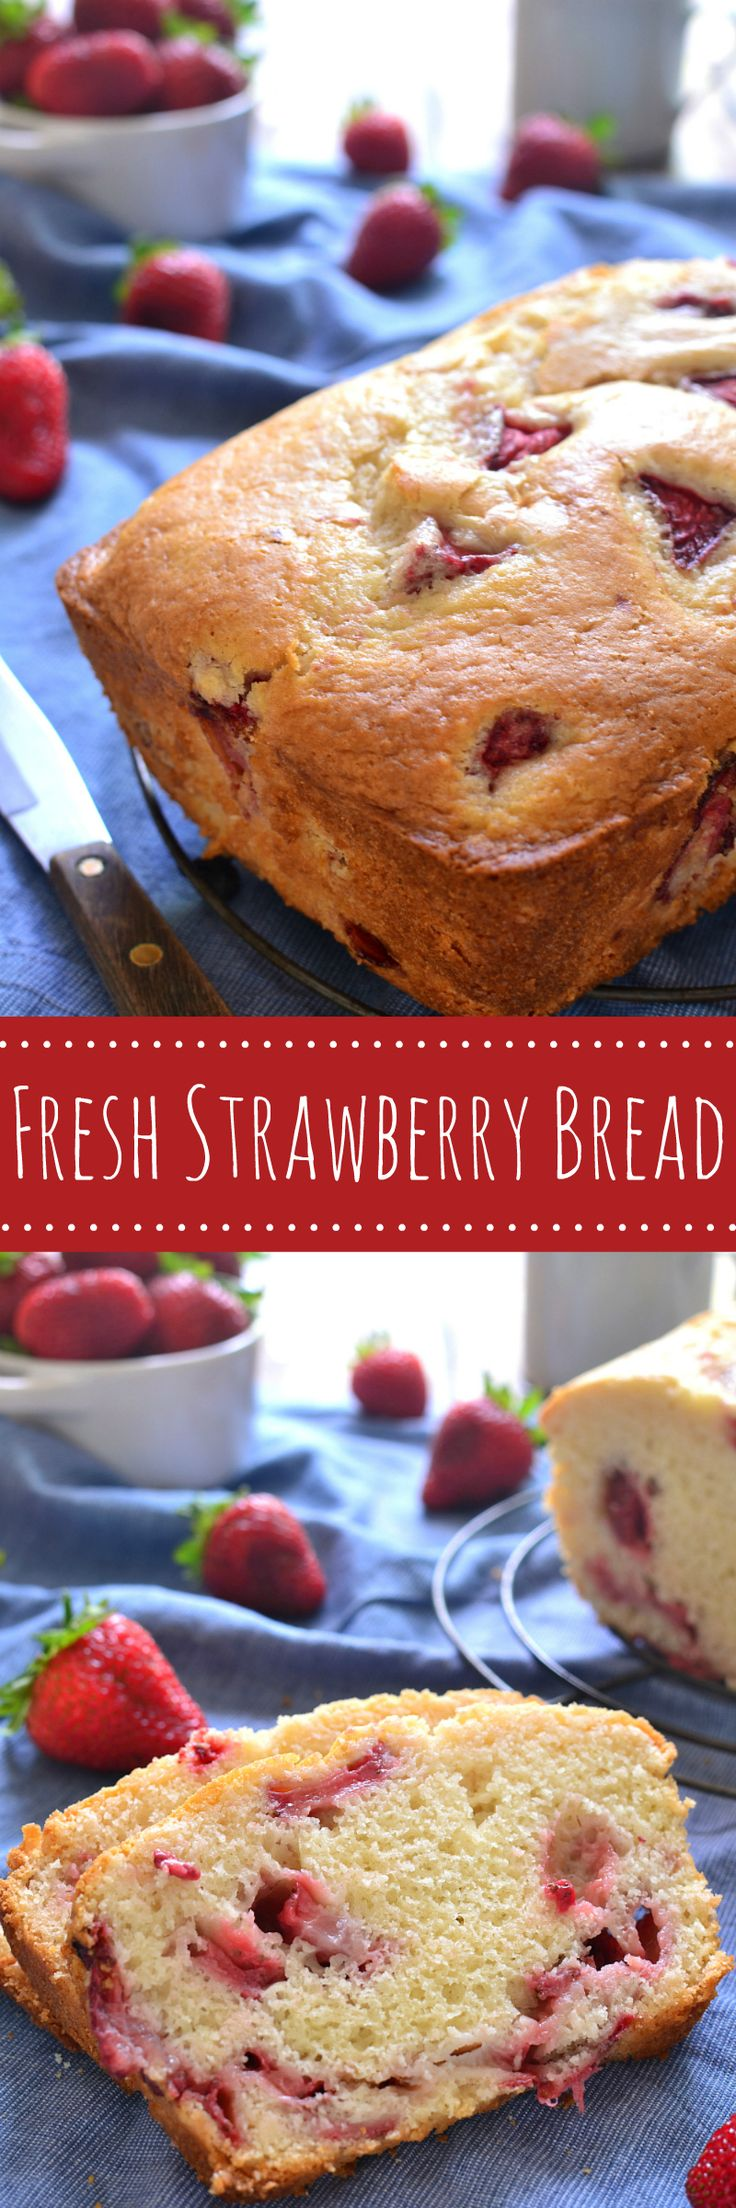 This Fresh Strawberry Bread is the perfect way to make use of fresh summer strawberries! It comes together quickly and is packed with delicious strawberry flavor. Sure to be a family favorite! #brewandrenew #ad (is strawberry a berry)